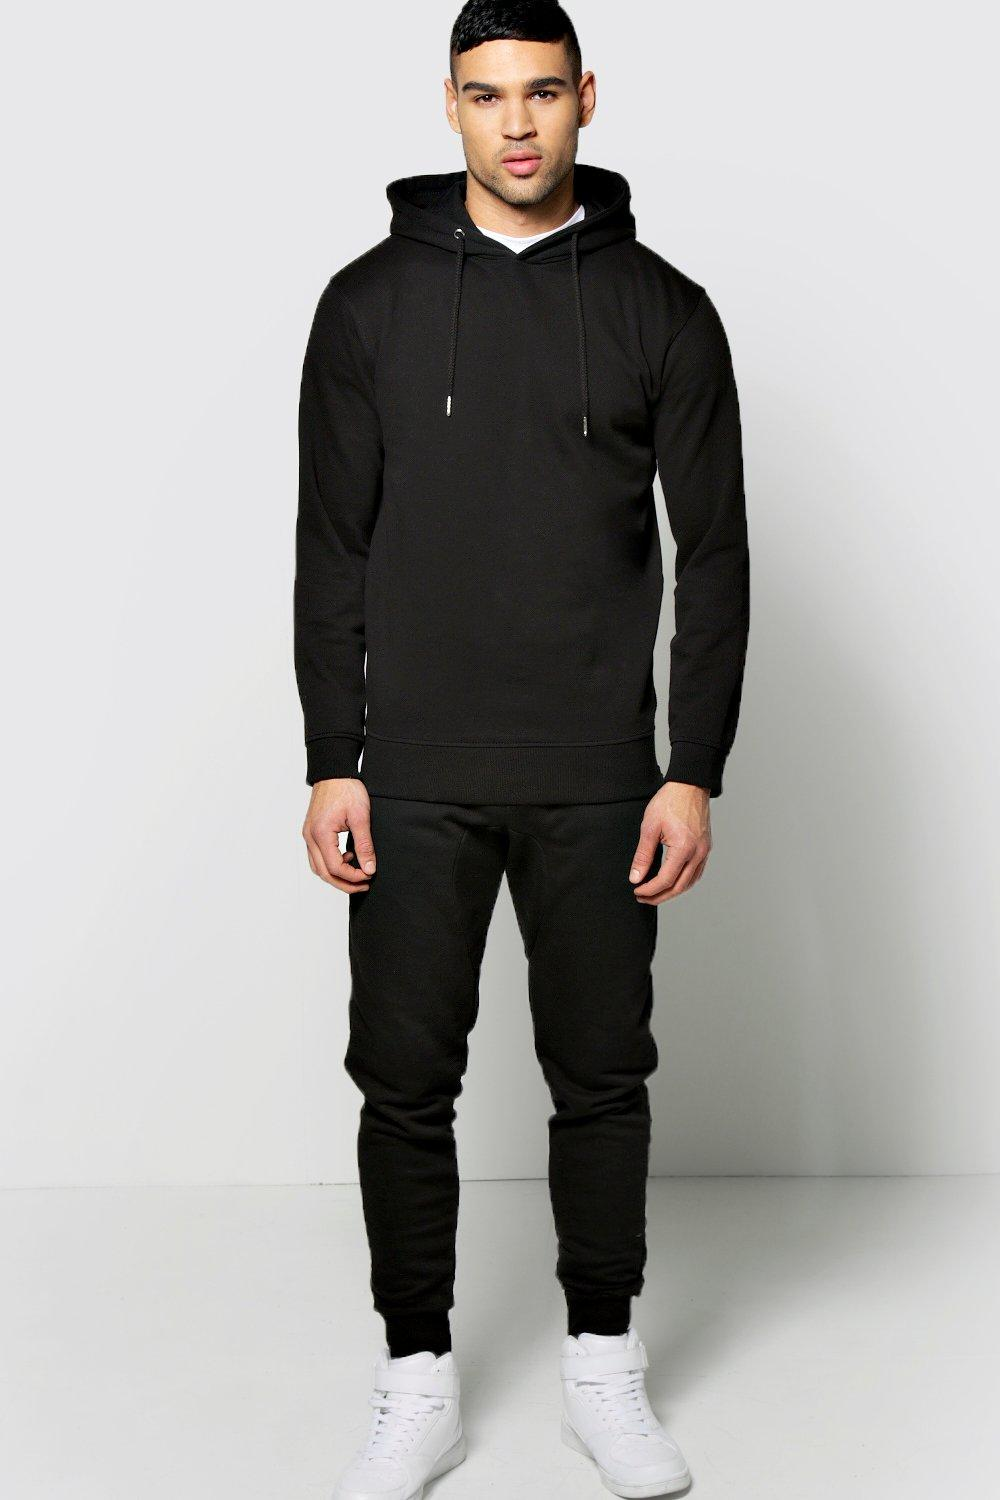 Skinny Hooded Tracksuit With Zip Details